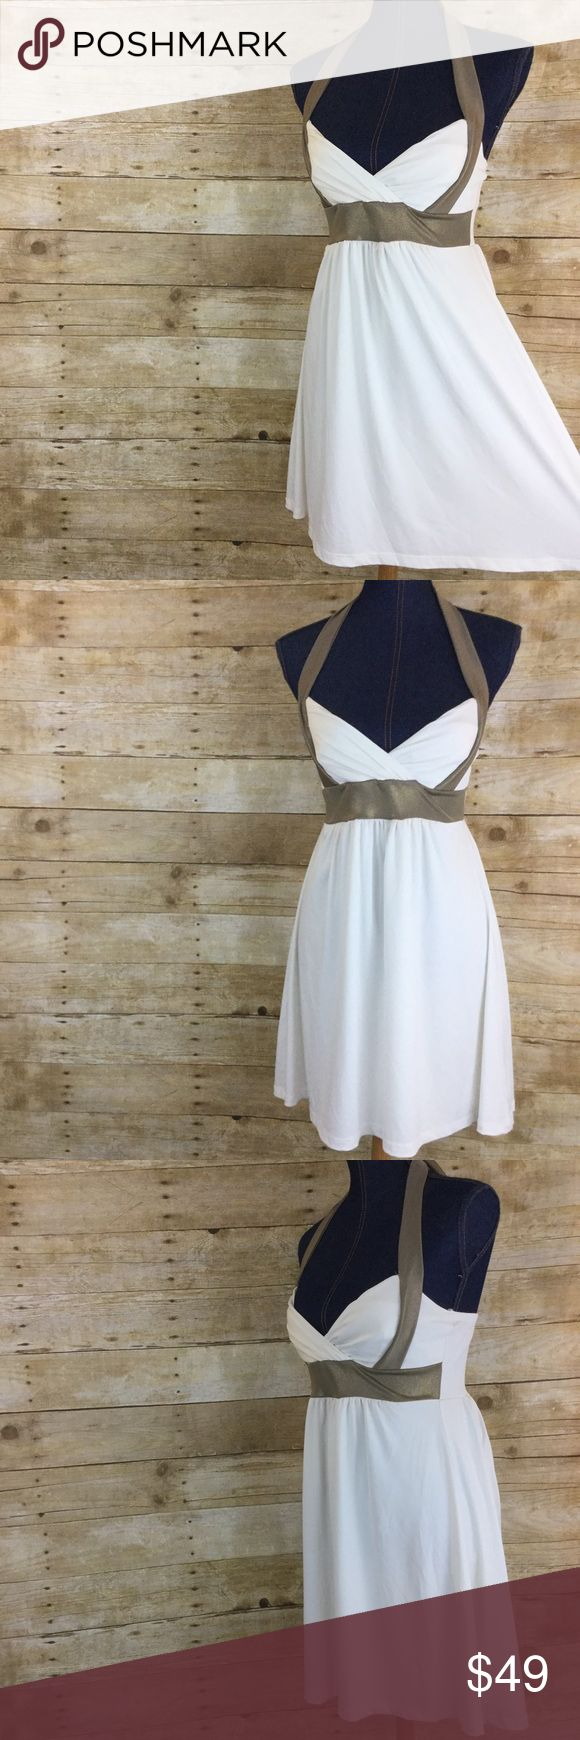 BODY CENTRAL Small White Empire Waist Halter Dress BODY CENTRAL Small White Empire Waist Halter Dress. Nice pre-loved condition! Very slimming and fit at up to a D cup. More info in pics.  White/bronze. Love this summer sundress! Body Central Dresses Mini